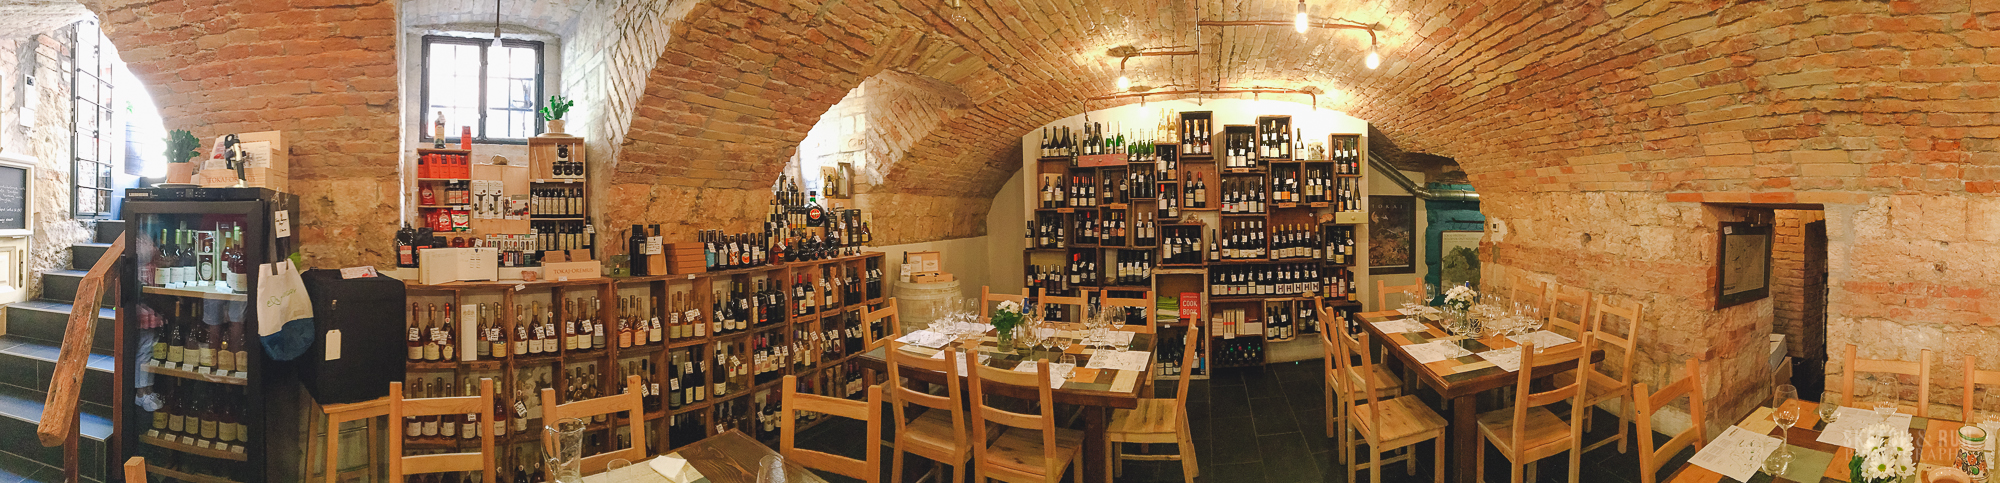 budapest, tasting table, hungary, restaurant, winery